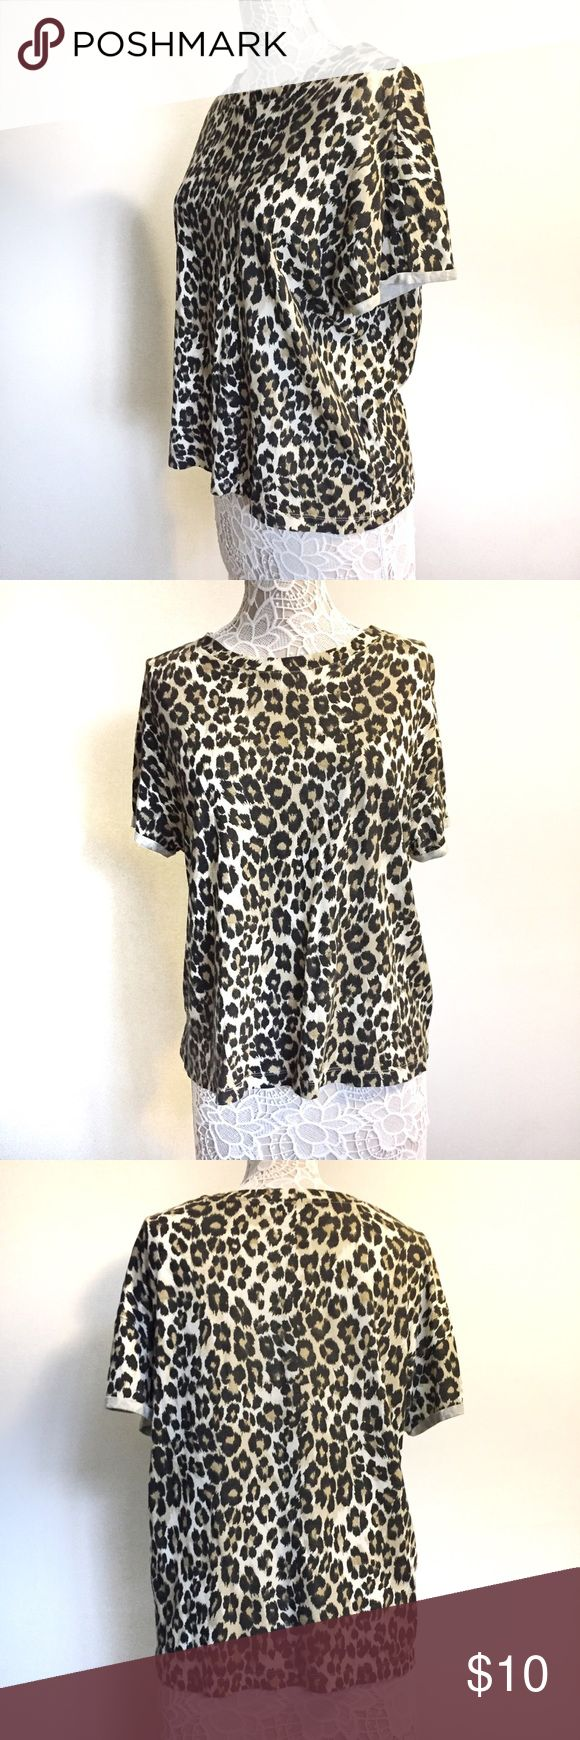 Zara Cheetah Print Shirt Zara Cheetah Print Shirt.  Size M, can fit S.  Pre owned, in very good condition. Zara Tops Tees - Short Sleeve